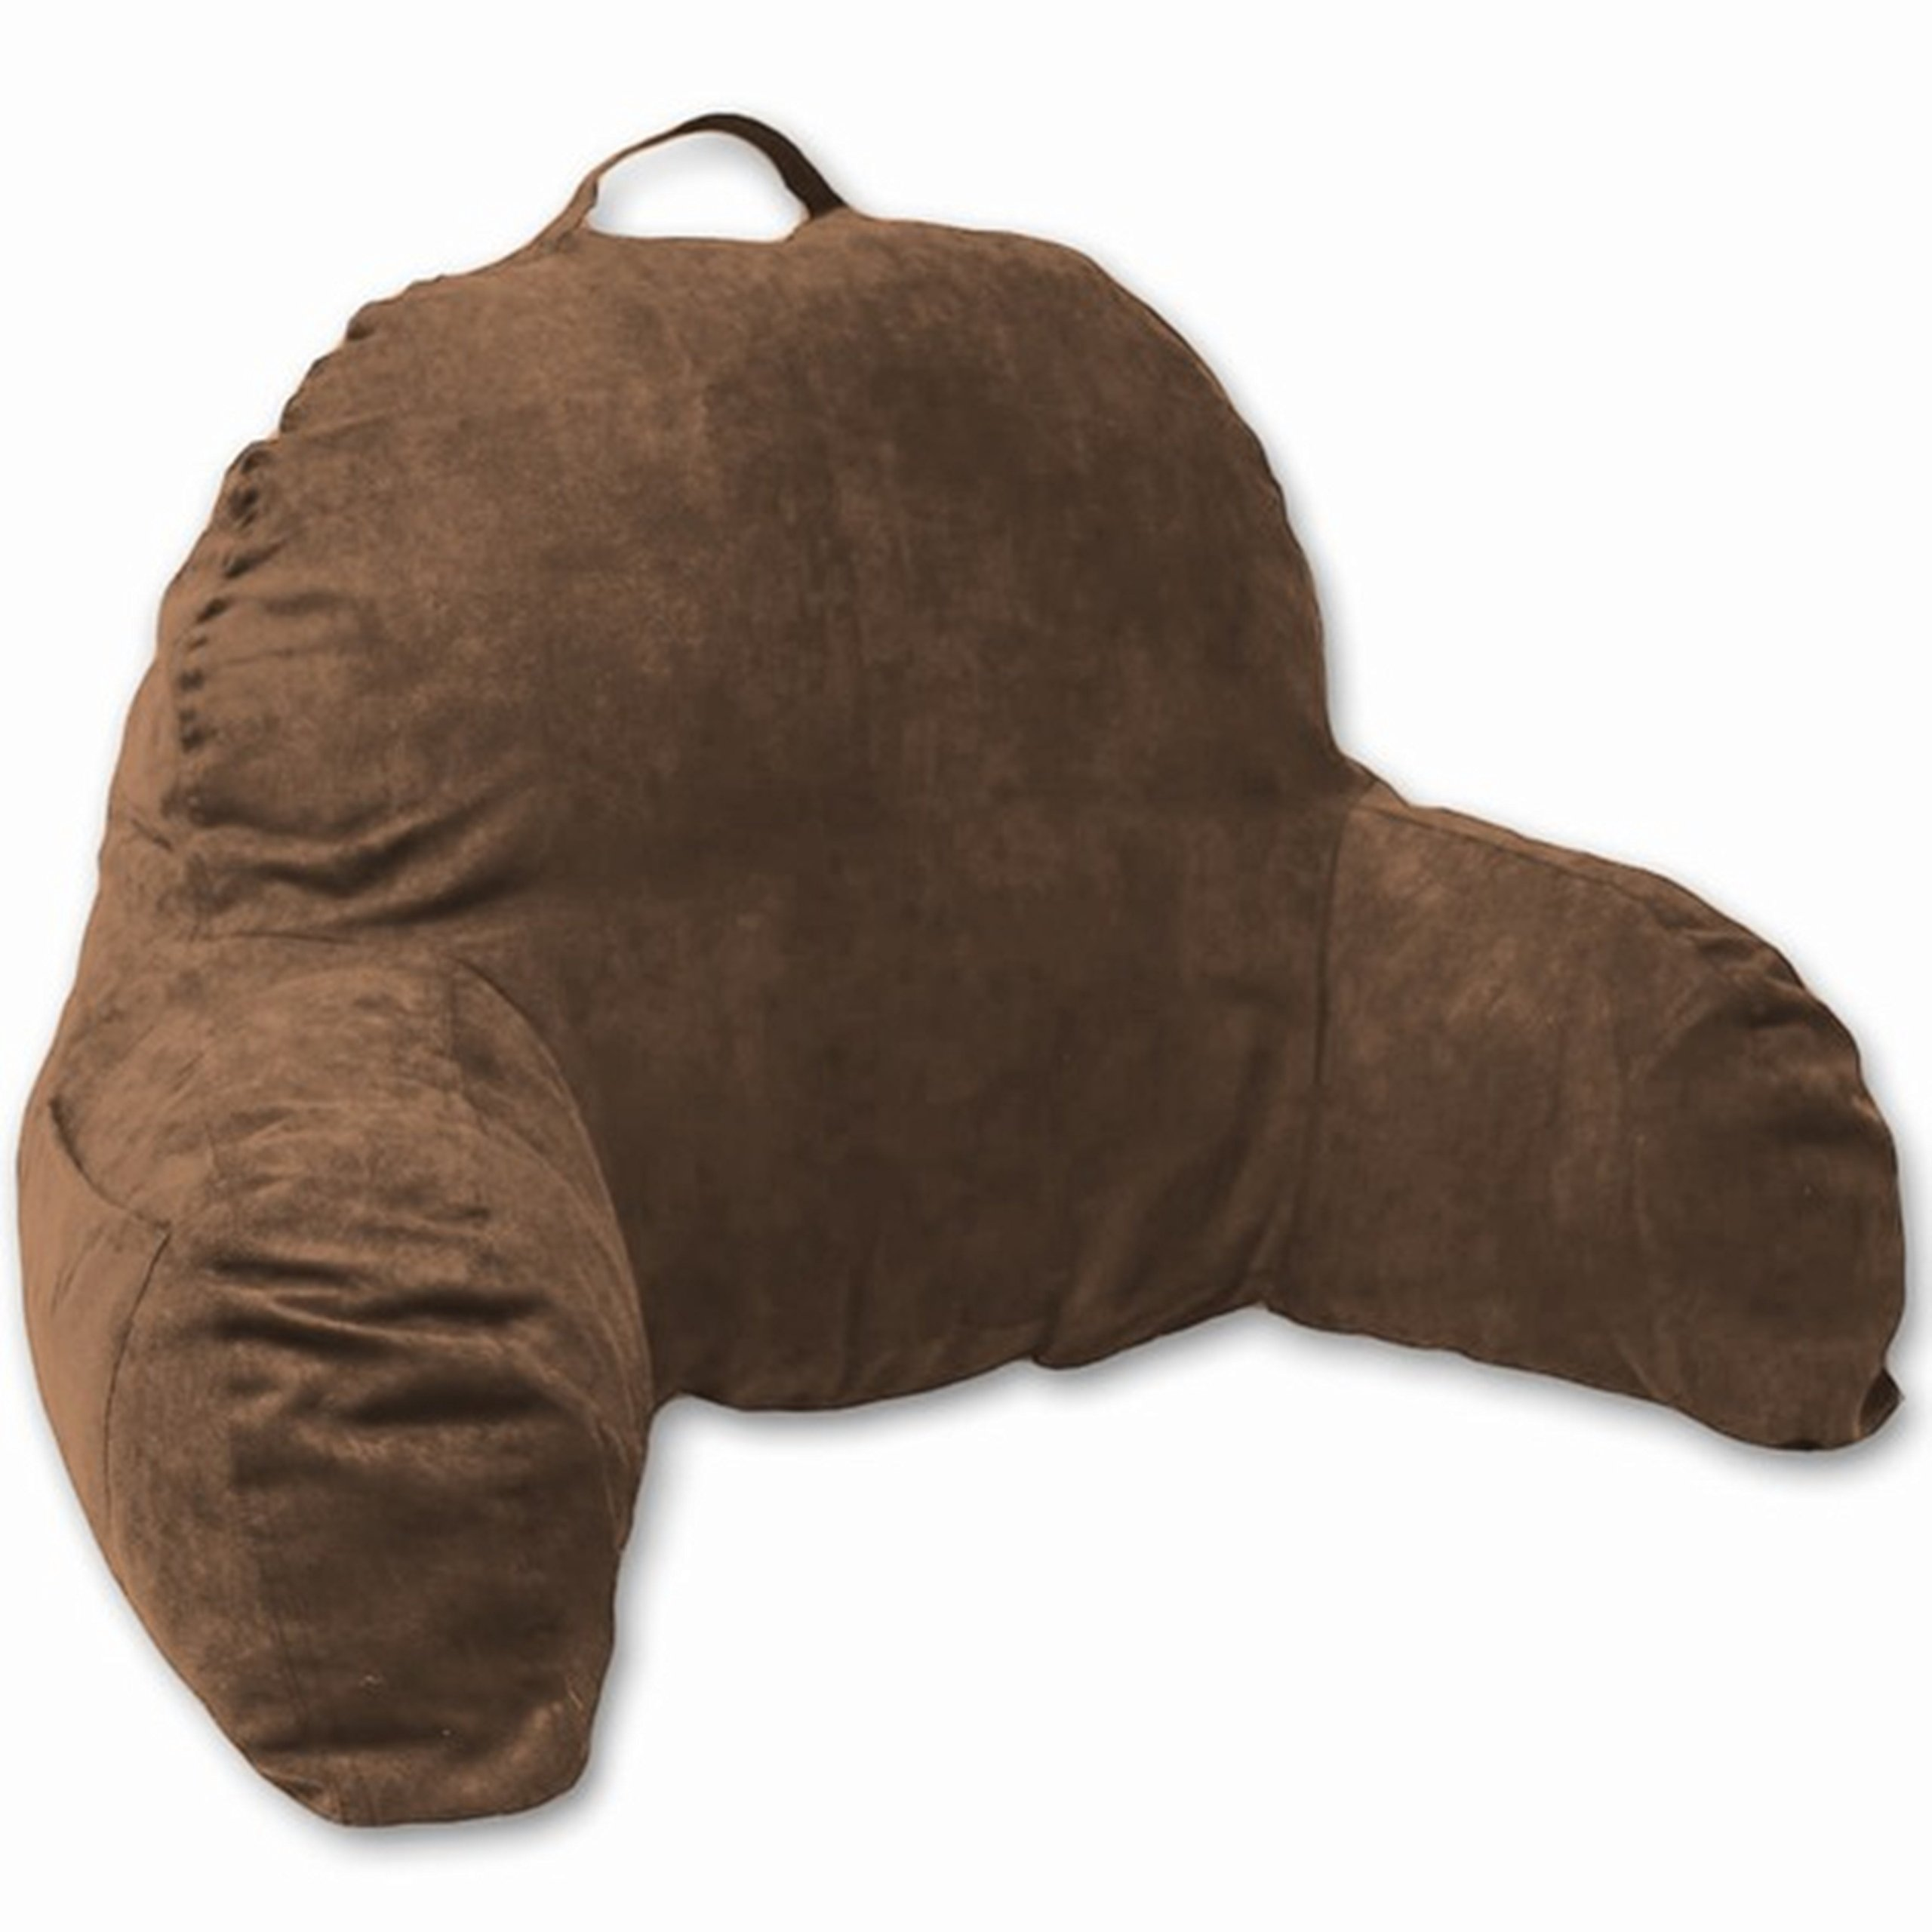 Deluxe Comfort Microsuede Bed Rest - Reading and Bedrest Lounger - Sitting Supprt Pillow - Soft But Firmly Stuffed Fiberfill - Backrest Pillow With Arms, Brown